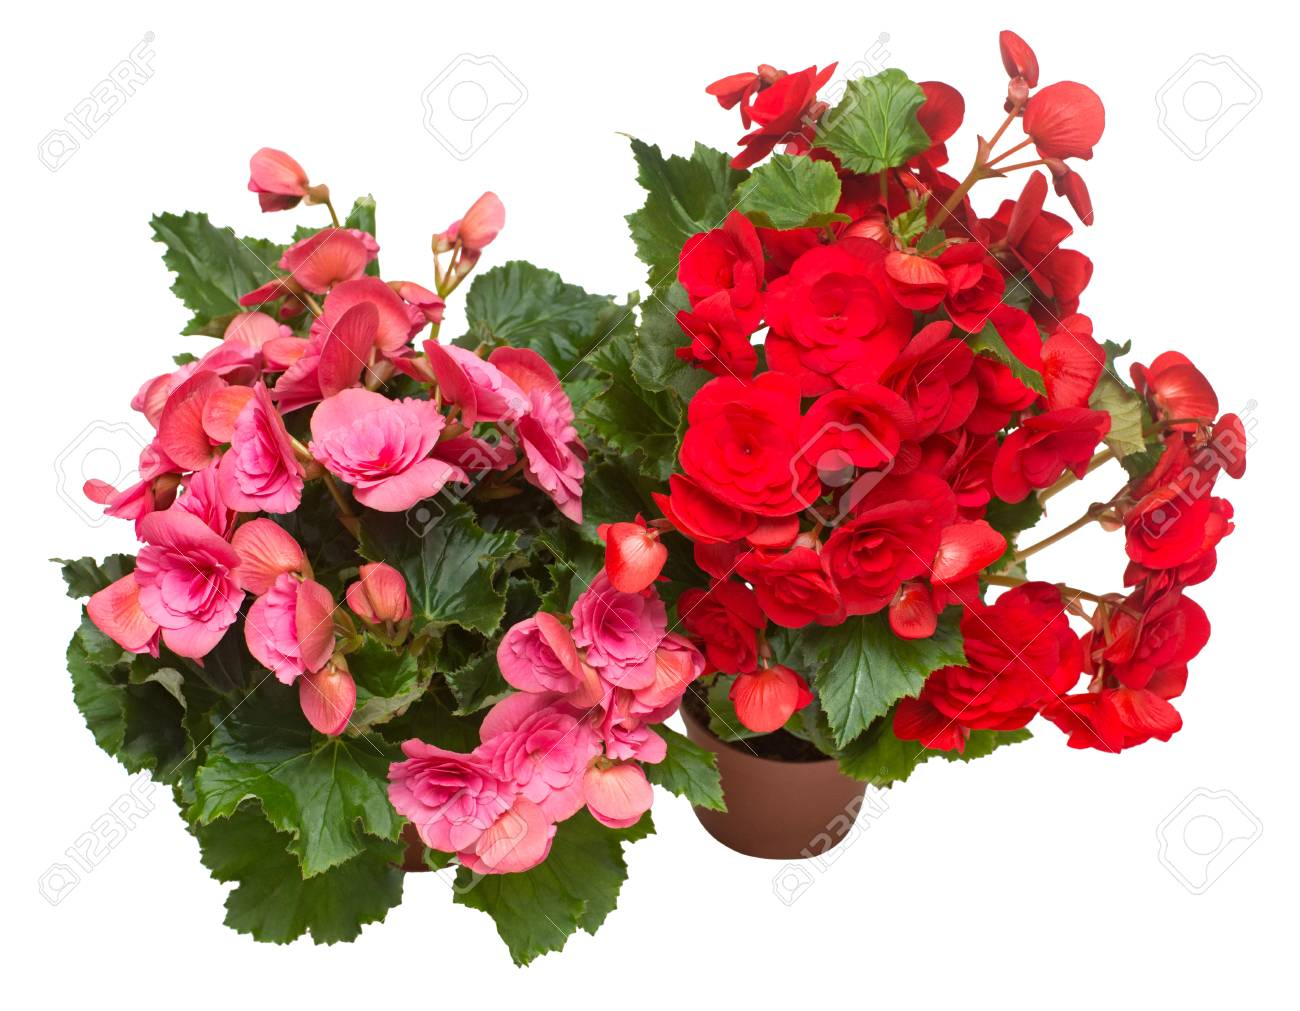 Begonia red and pink in a pot flowers isolated on white background. Flat lay, top view - 95203025